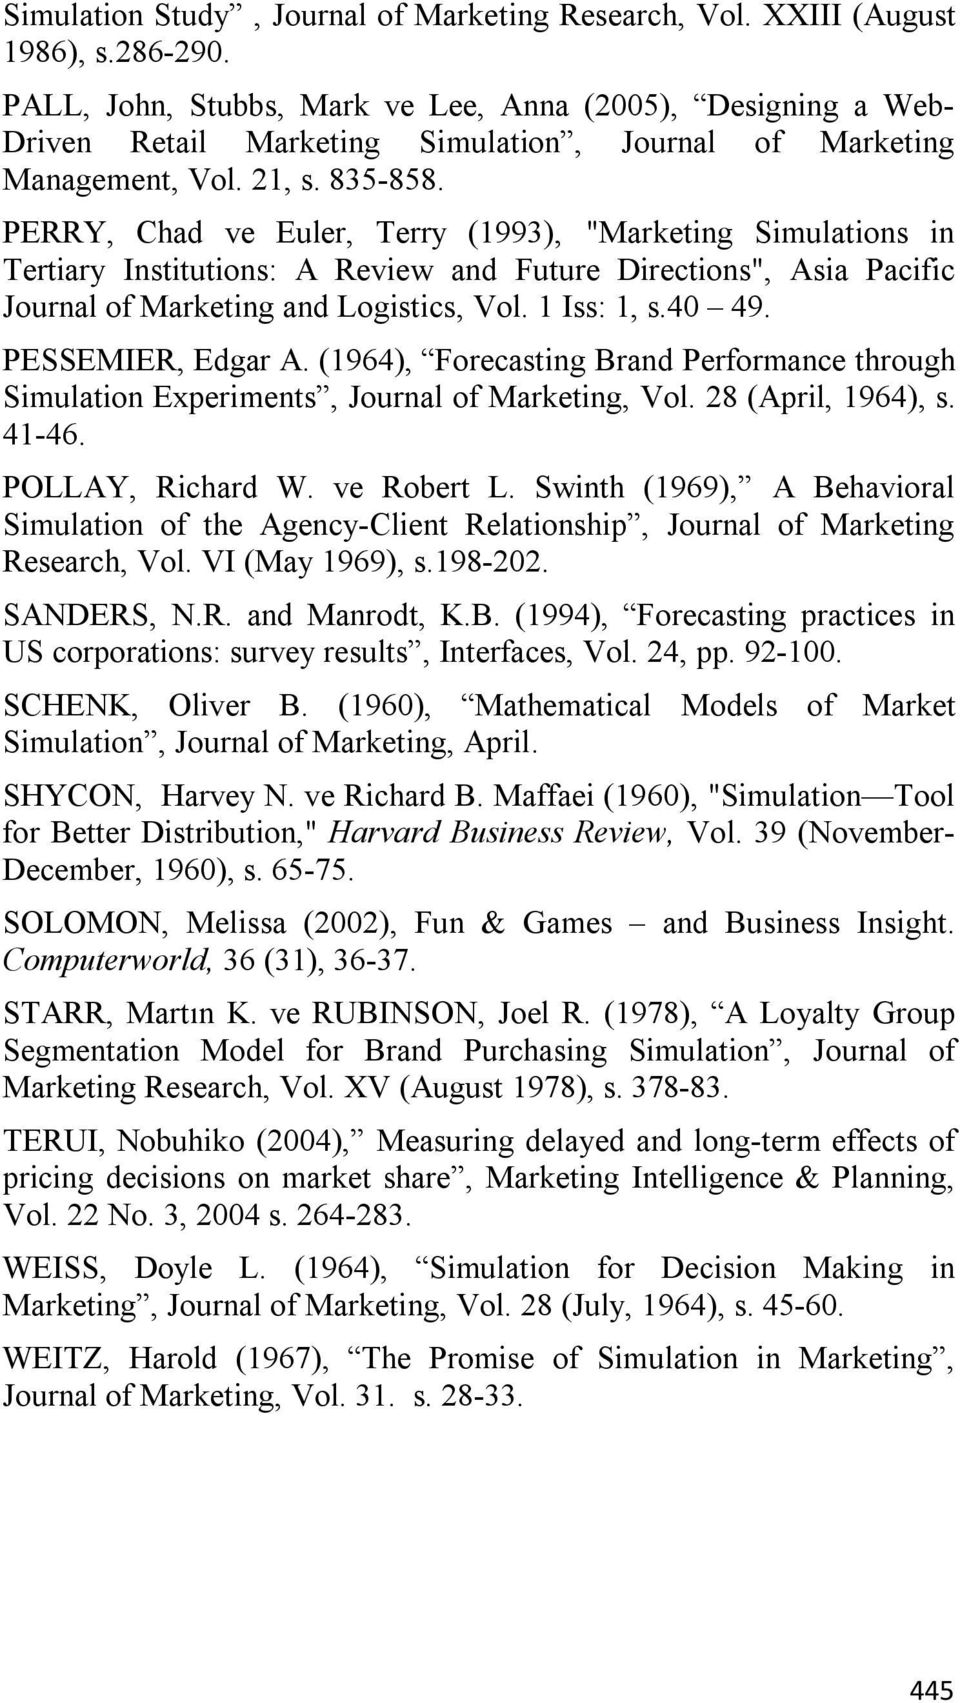 "PERRY, Chad ve Euler, Terry (1993), ""Marketing Simulations in Tertiary Institutions: A Review and Future Directions"", Asia Pacific Journal of Marketing and Logistics, Vol. 1 Iss: 1, s.40 49."